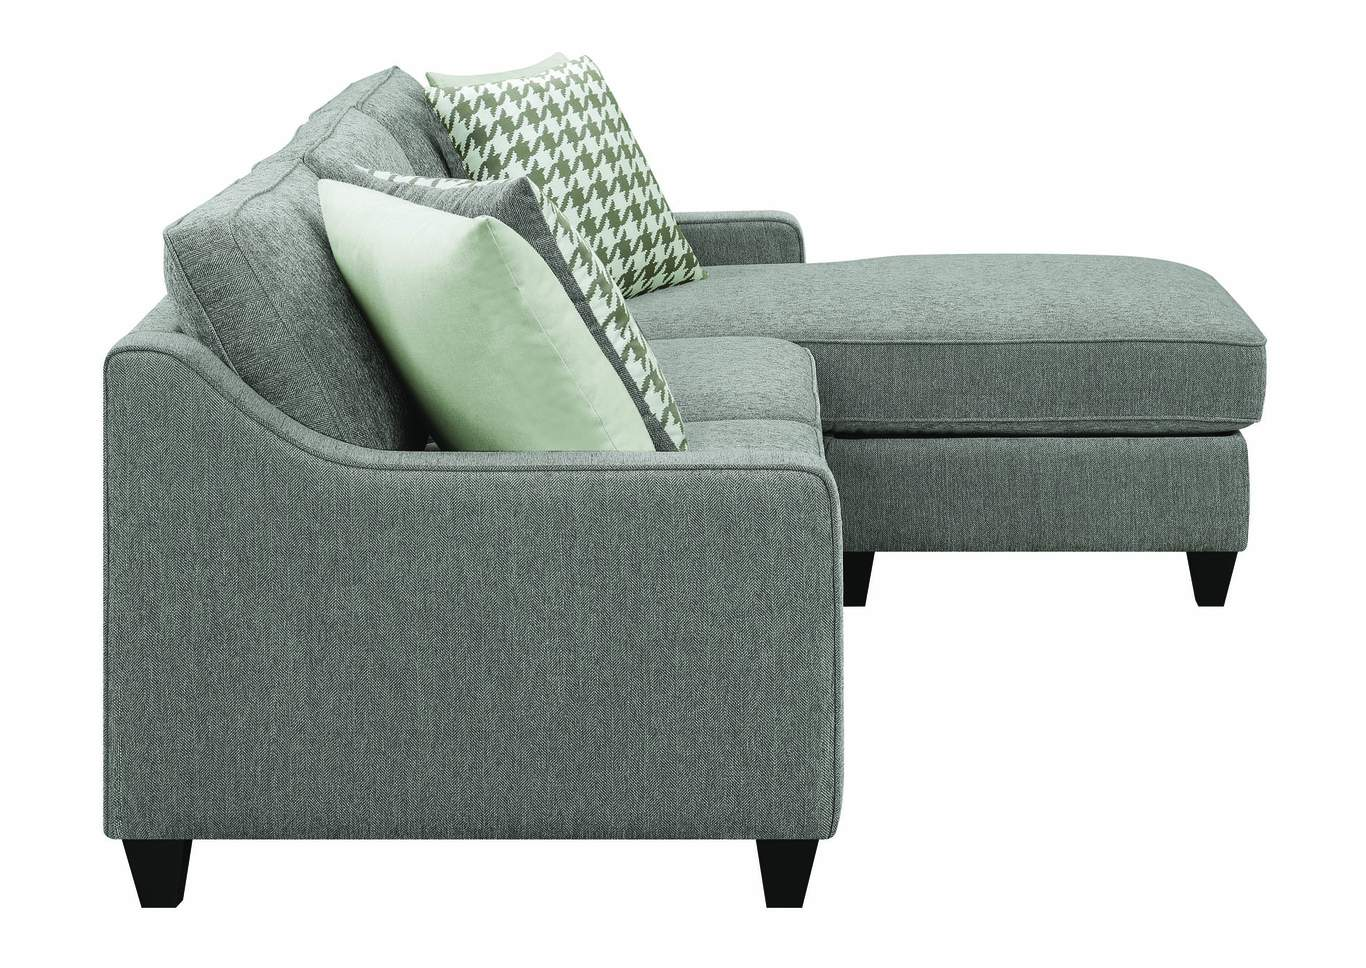 Charcoal Gray Sectional,Coaster Furniture